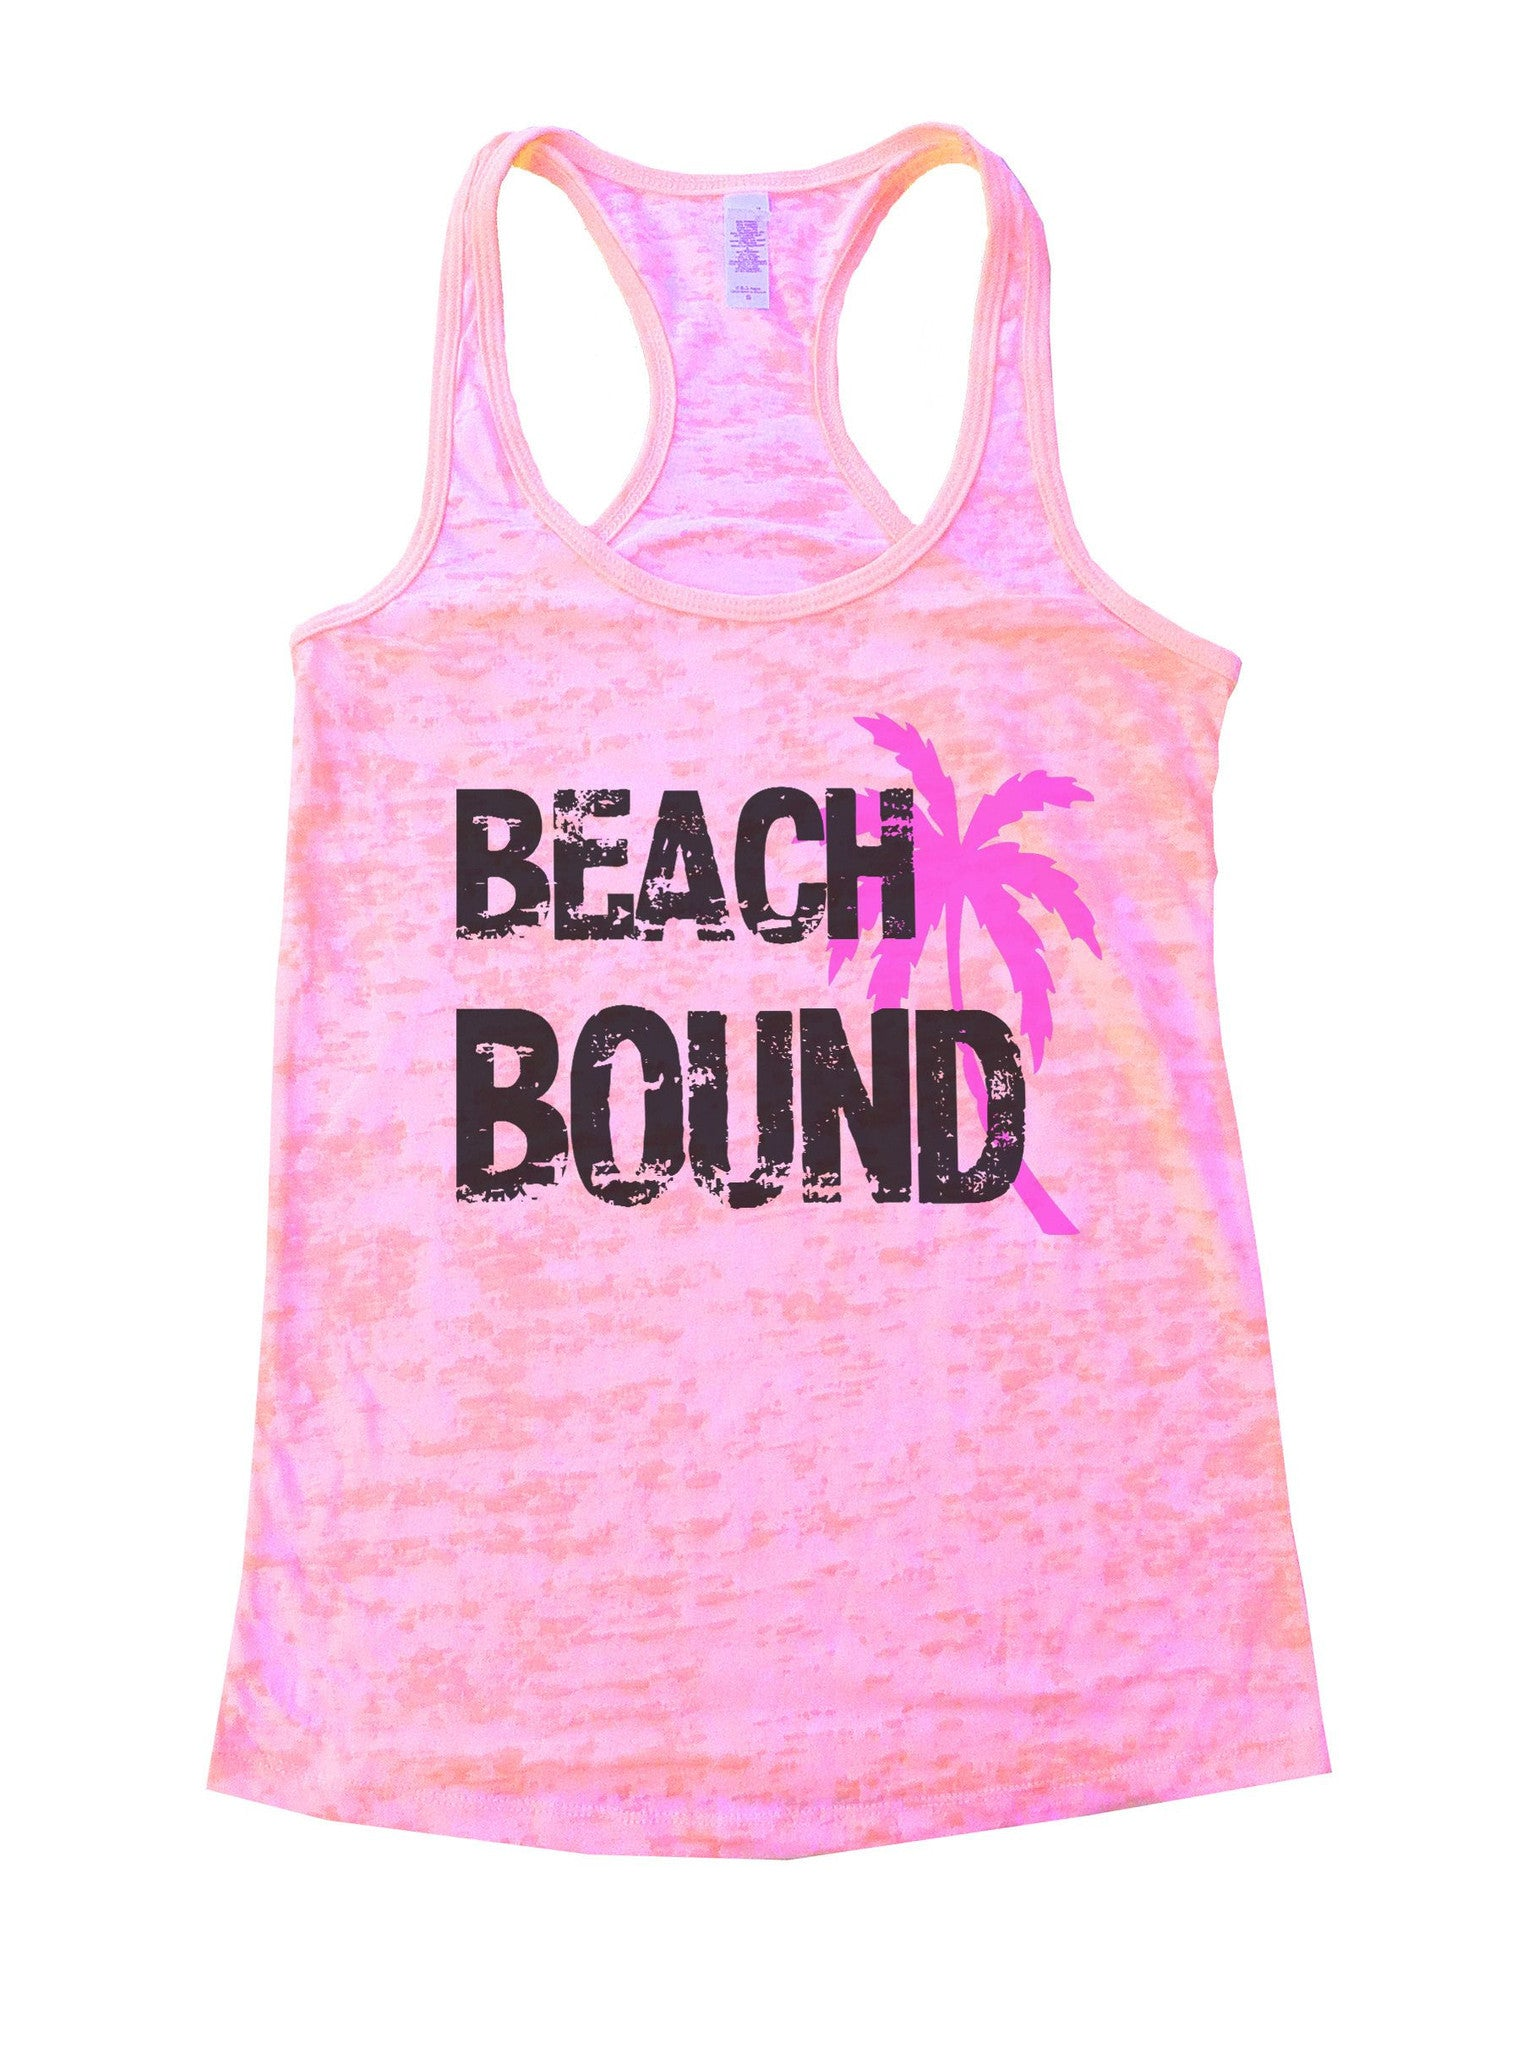 Beach Bound Burnout Tank Top By BurnoutTankTops.com - 748 - Funny Shirts Tank Tops Burnouts and Triblends  - 1